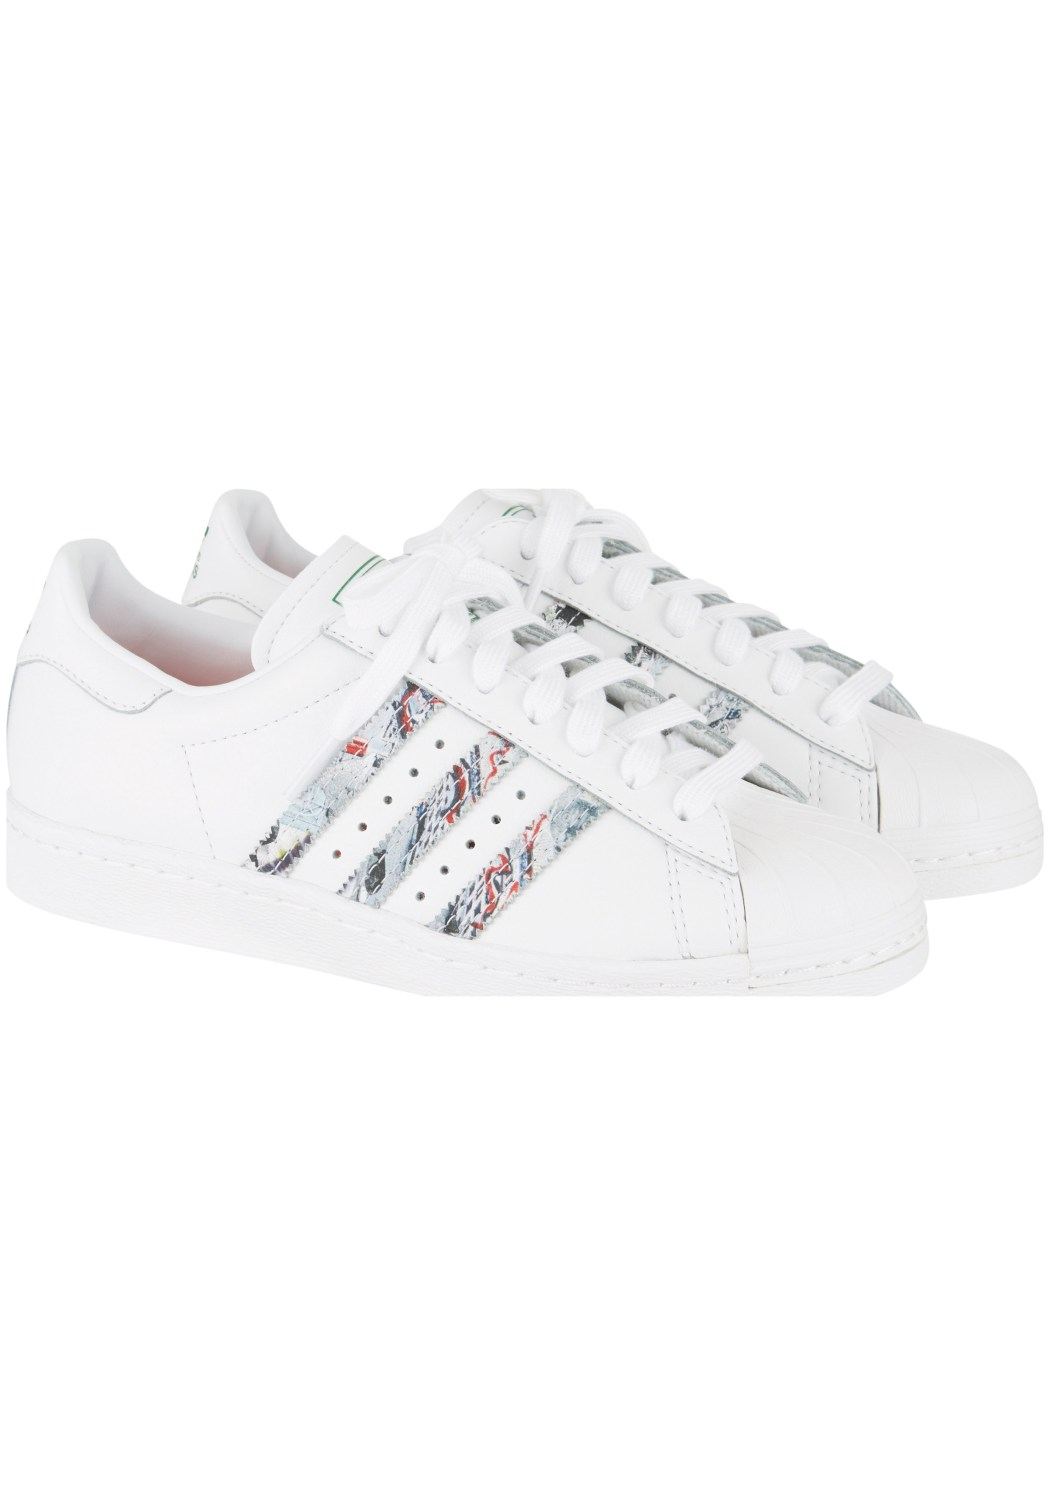 TOPSHOP X adidas Originals SUPERSTAR 80s W_NTD 4,290